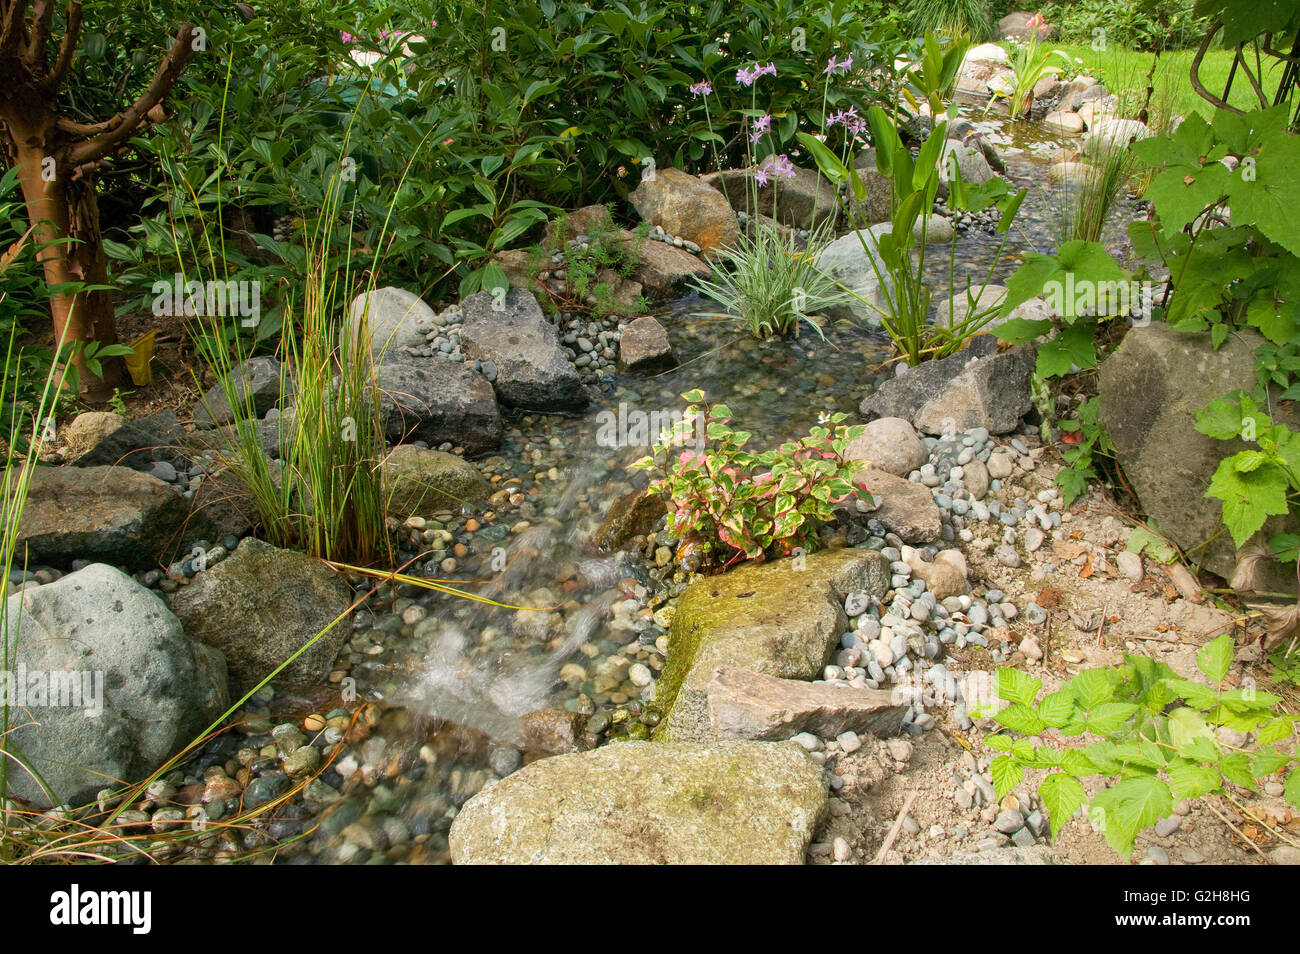 stream with various pond plants connecting two ponds in a